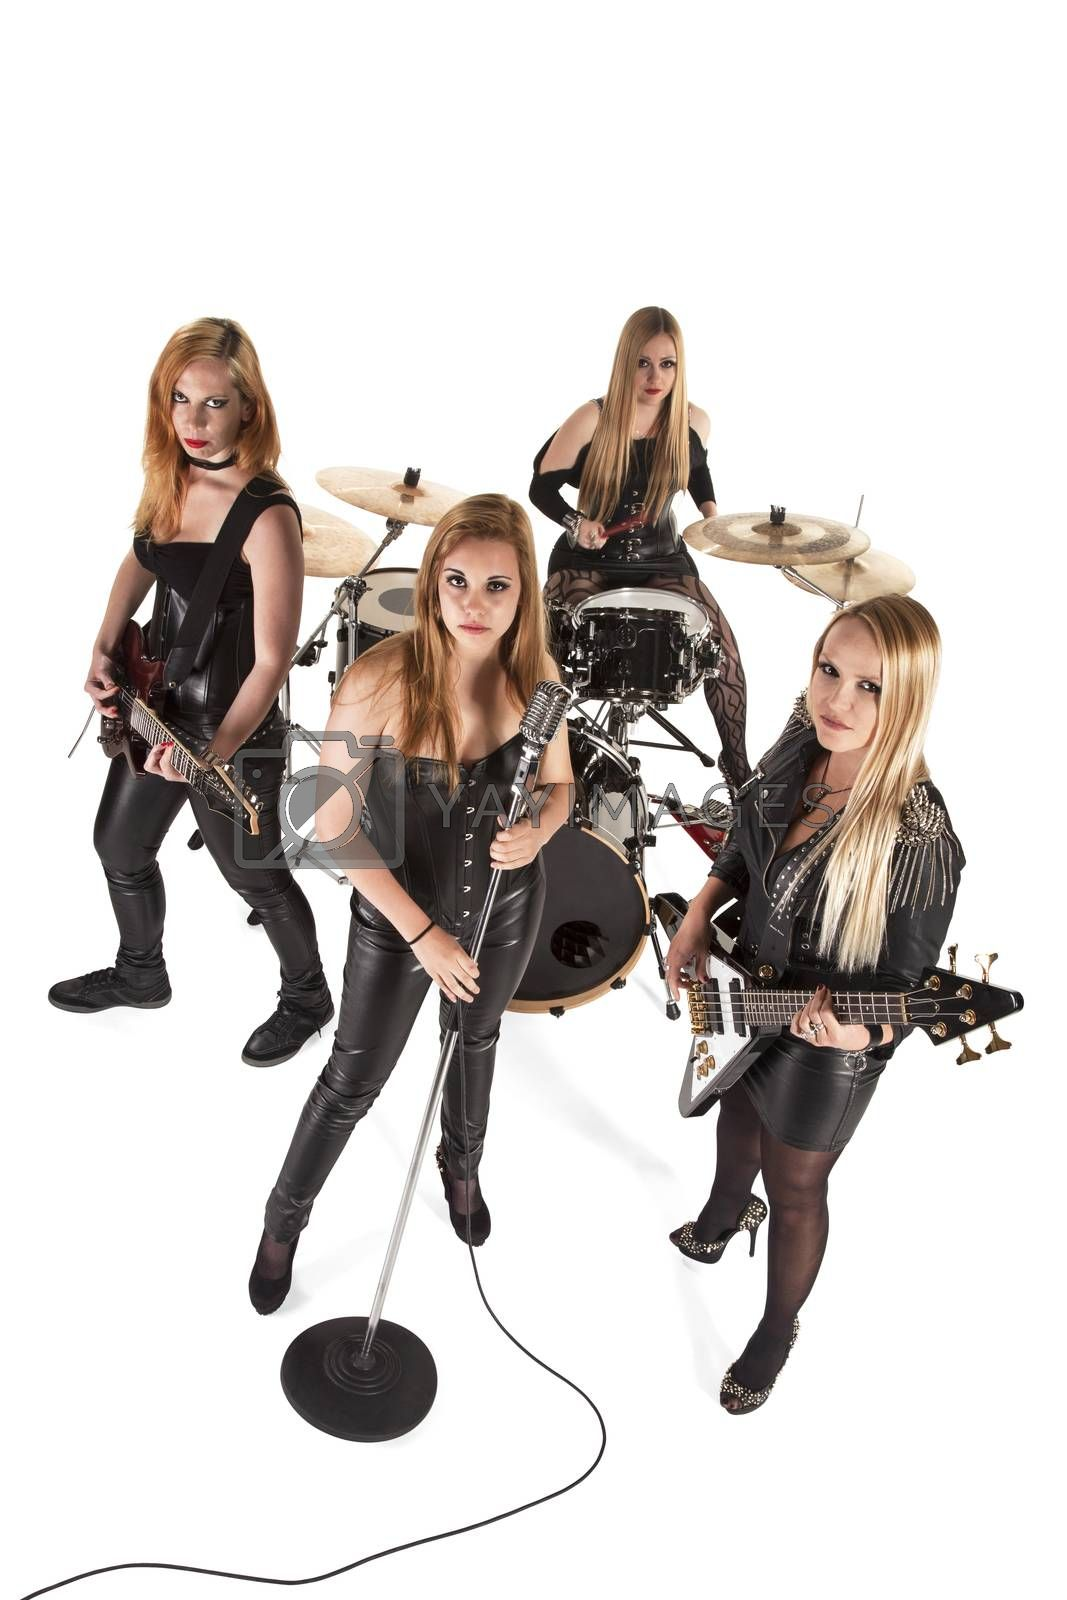 Portrait of female music band by Aarstudio